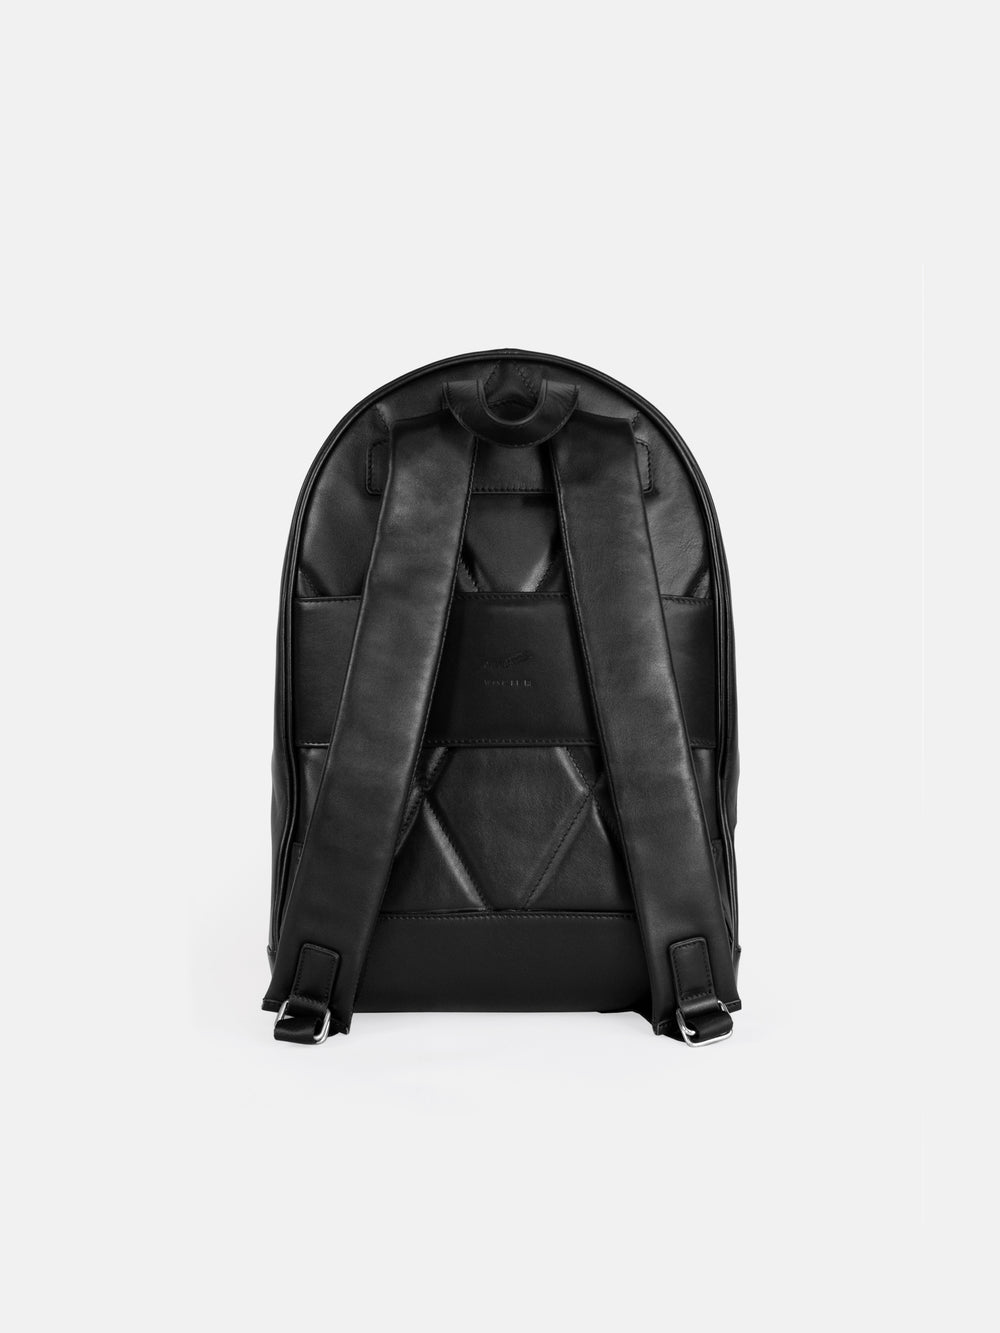 f30 business backpack black leather schwarzes leder